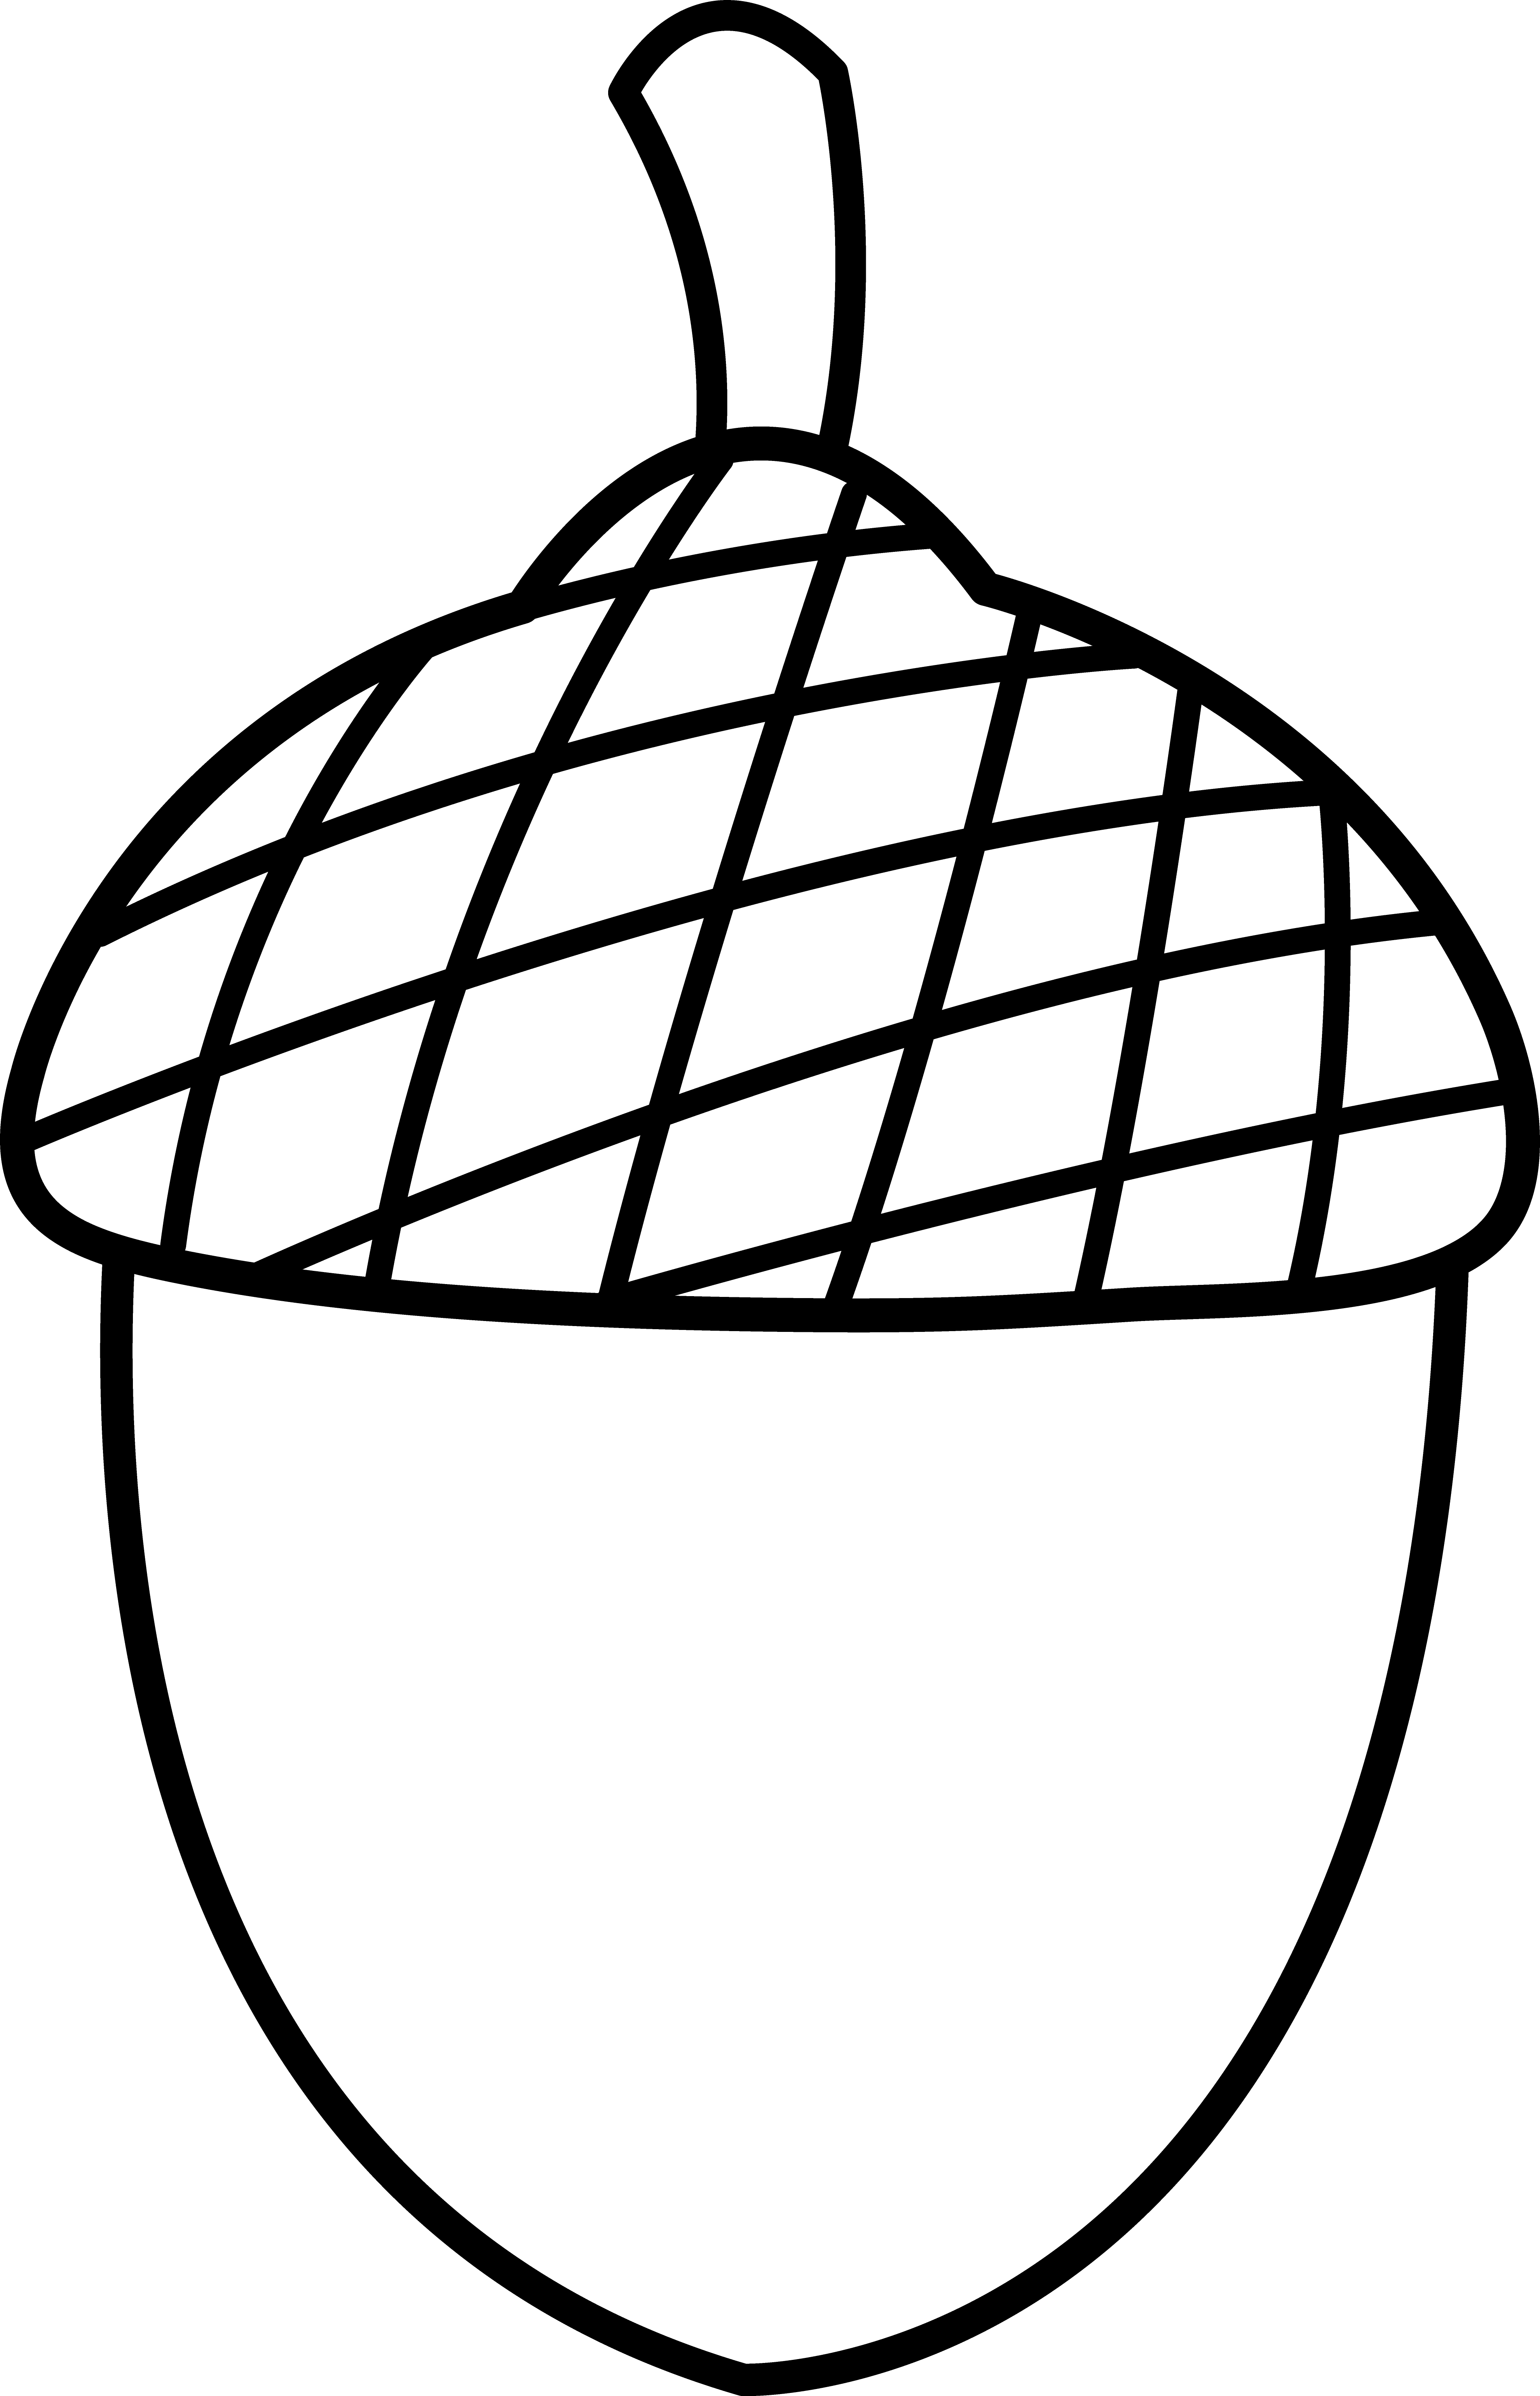 picture royalty free download Black and white . Acorn clipart.